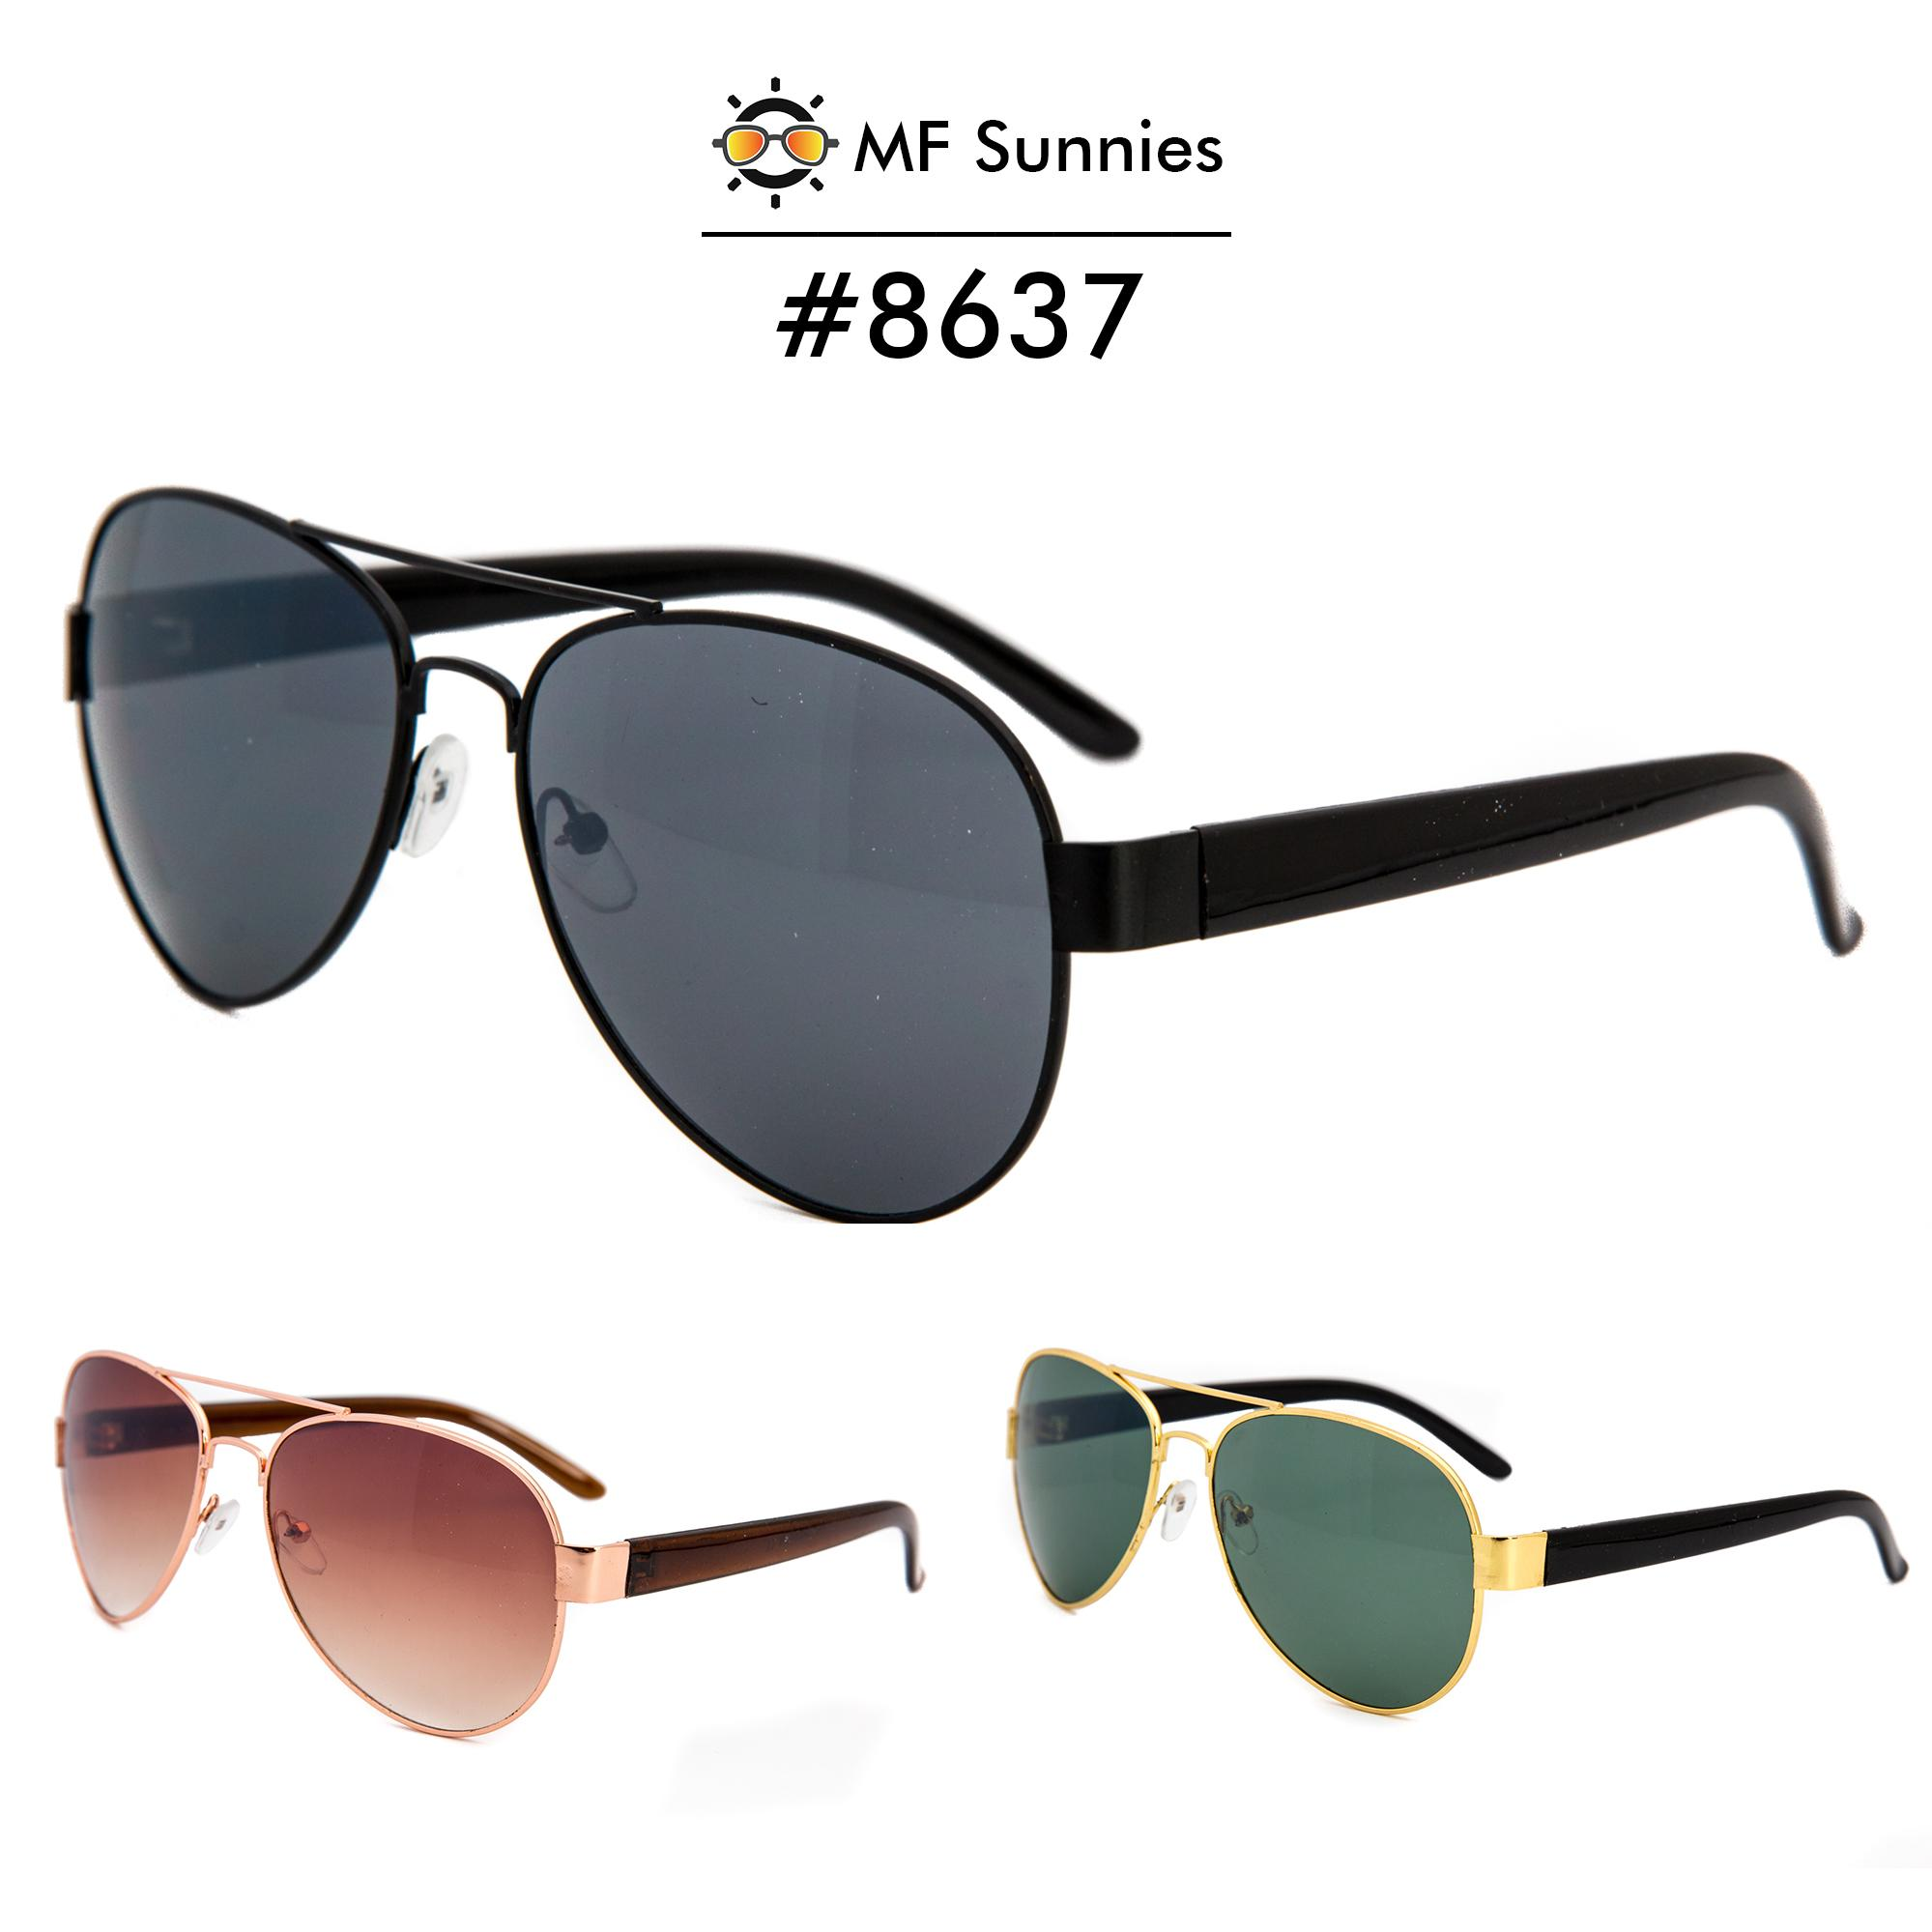 33b1723b5474 MFSunnies Classic Aviator Sunglass Metal Frame Fashion Eyewear  8637